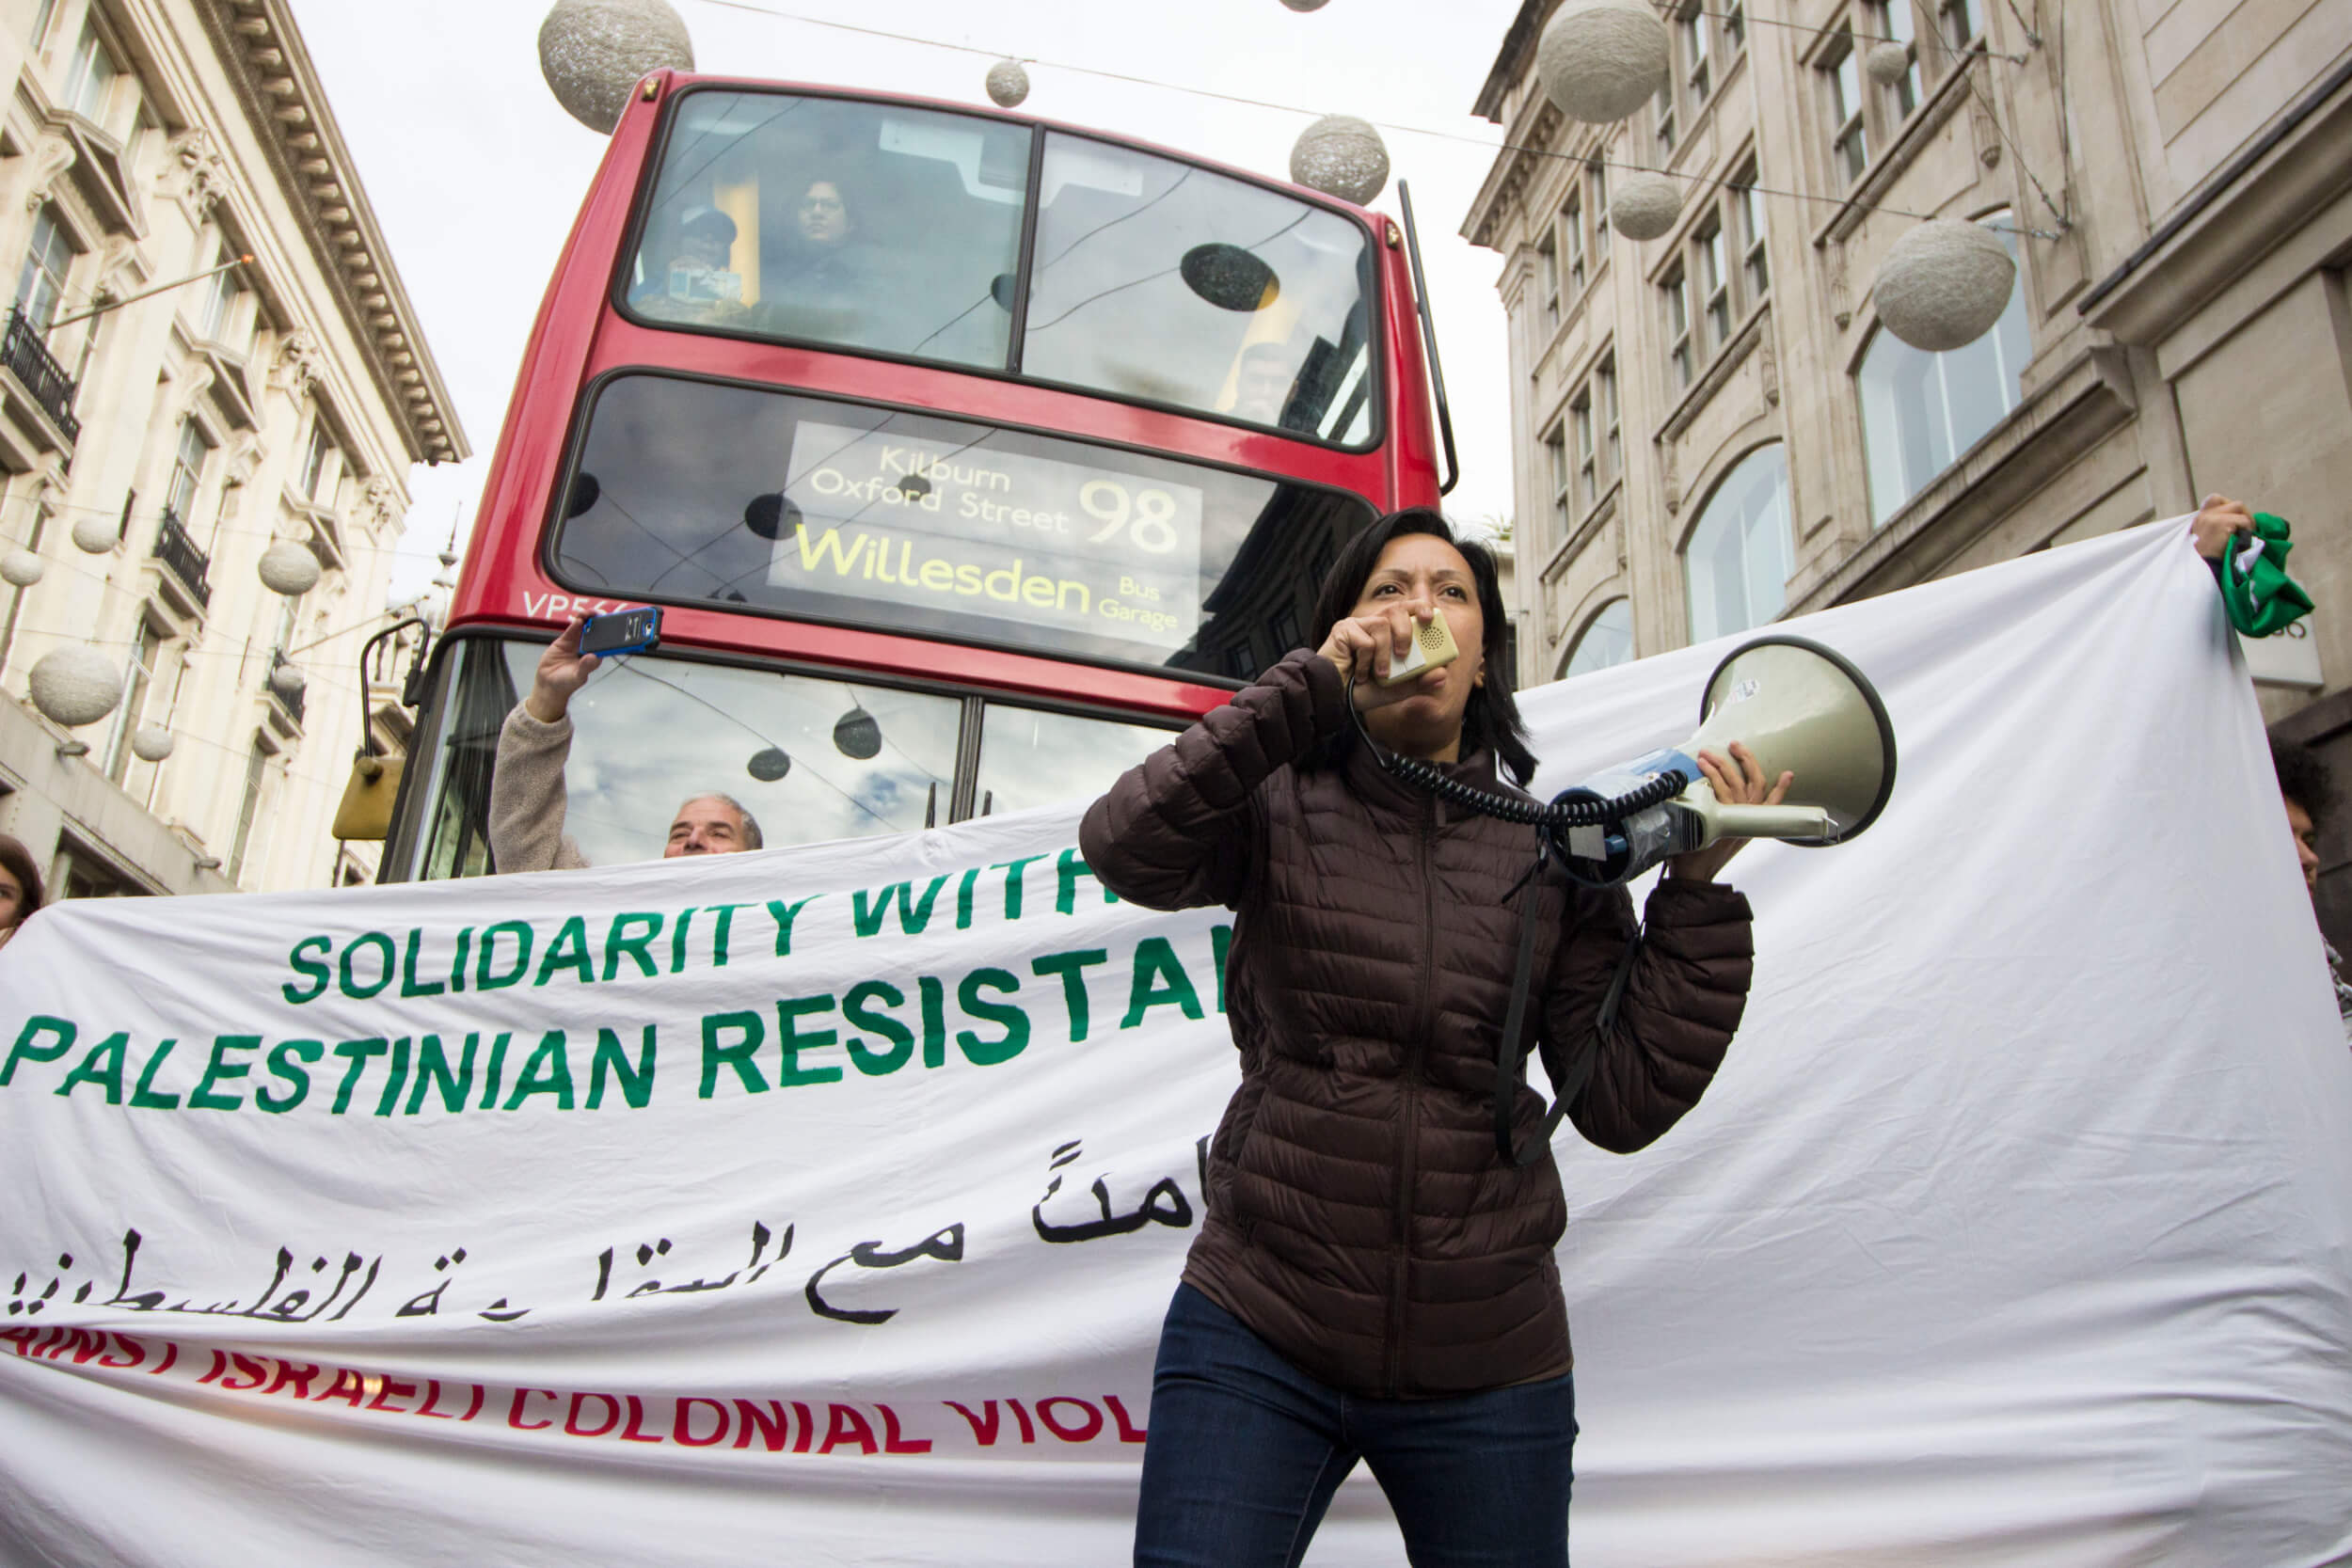 Palestinian artist and activist Rafeef Ziadah stops traffic on Oxford Street. (Photo: Sara Anna)